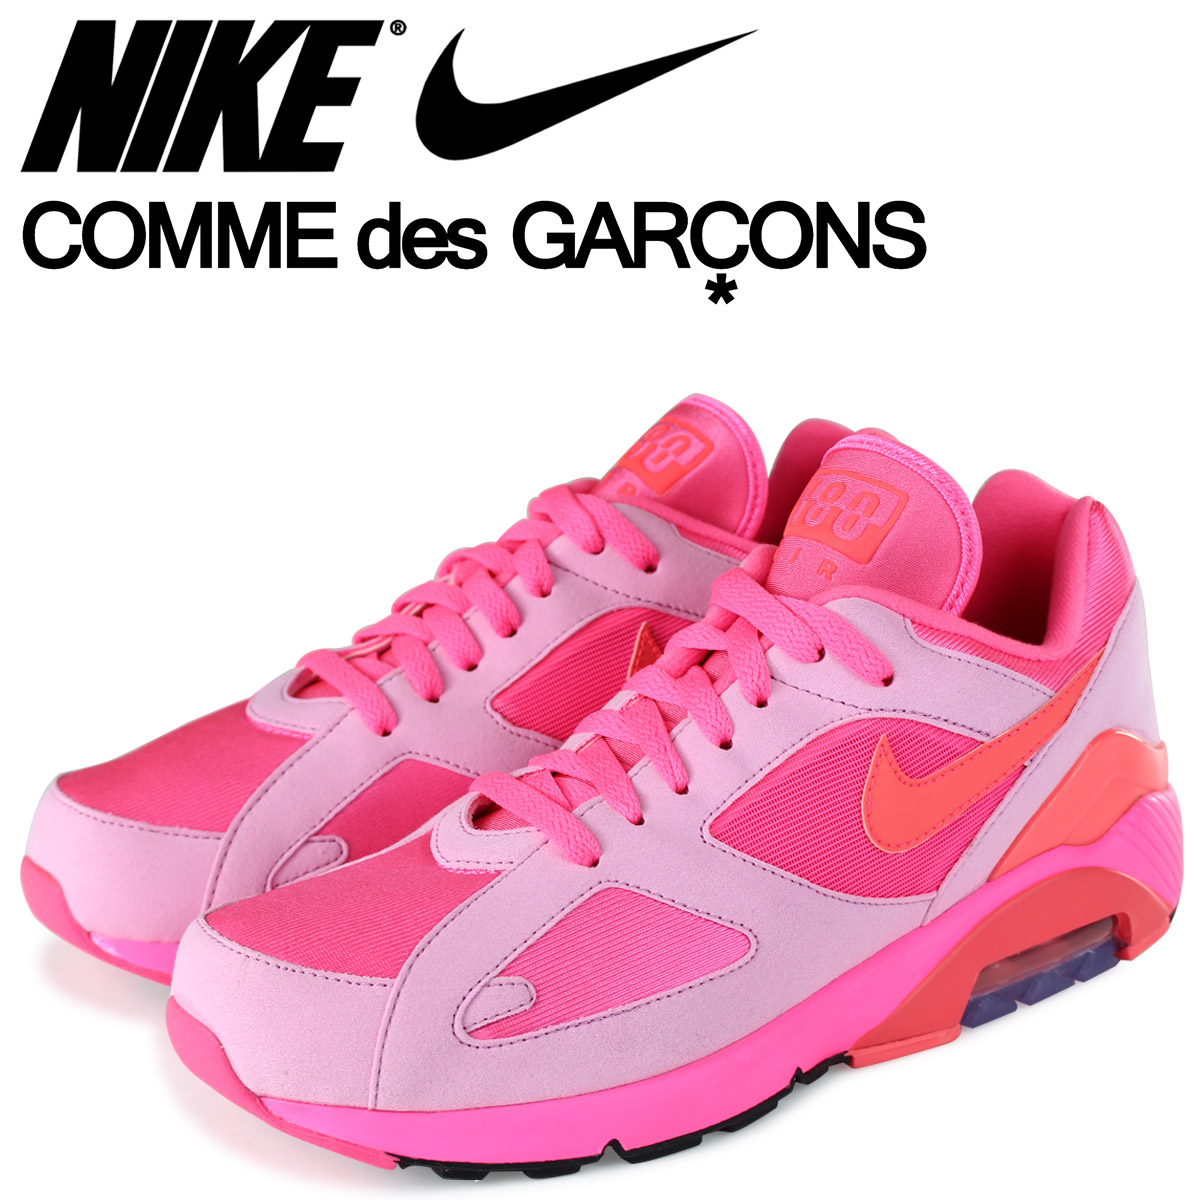 half off 4833c d7de7  brand NIKE getting high popularity from sneakers freak . The moment of the  topic that COMME des GARCONS HOMME PLUS performed collaboration of running  shoes ...